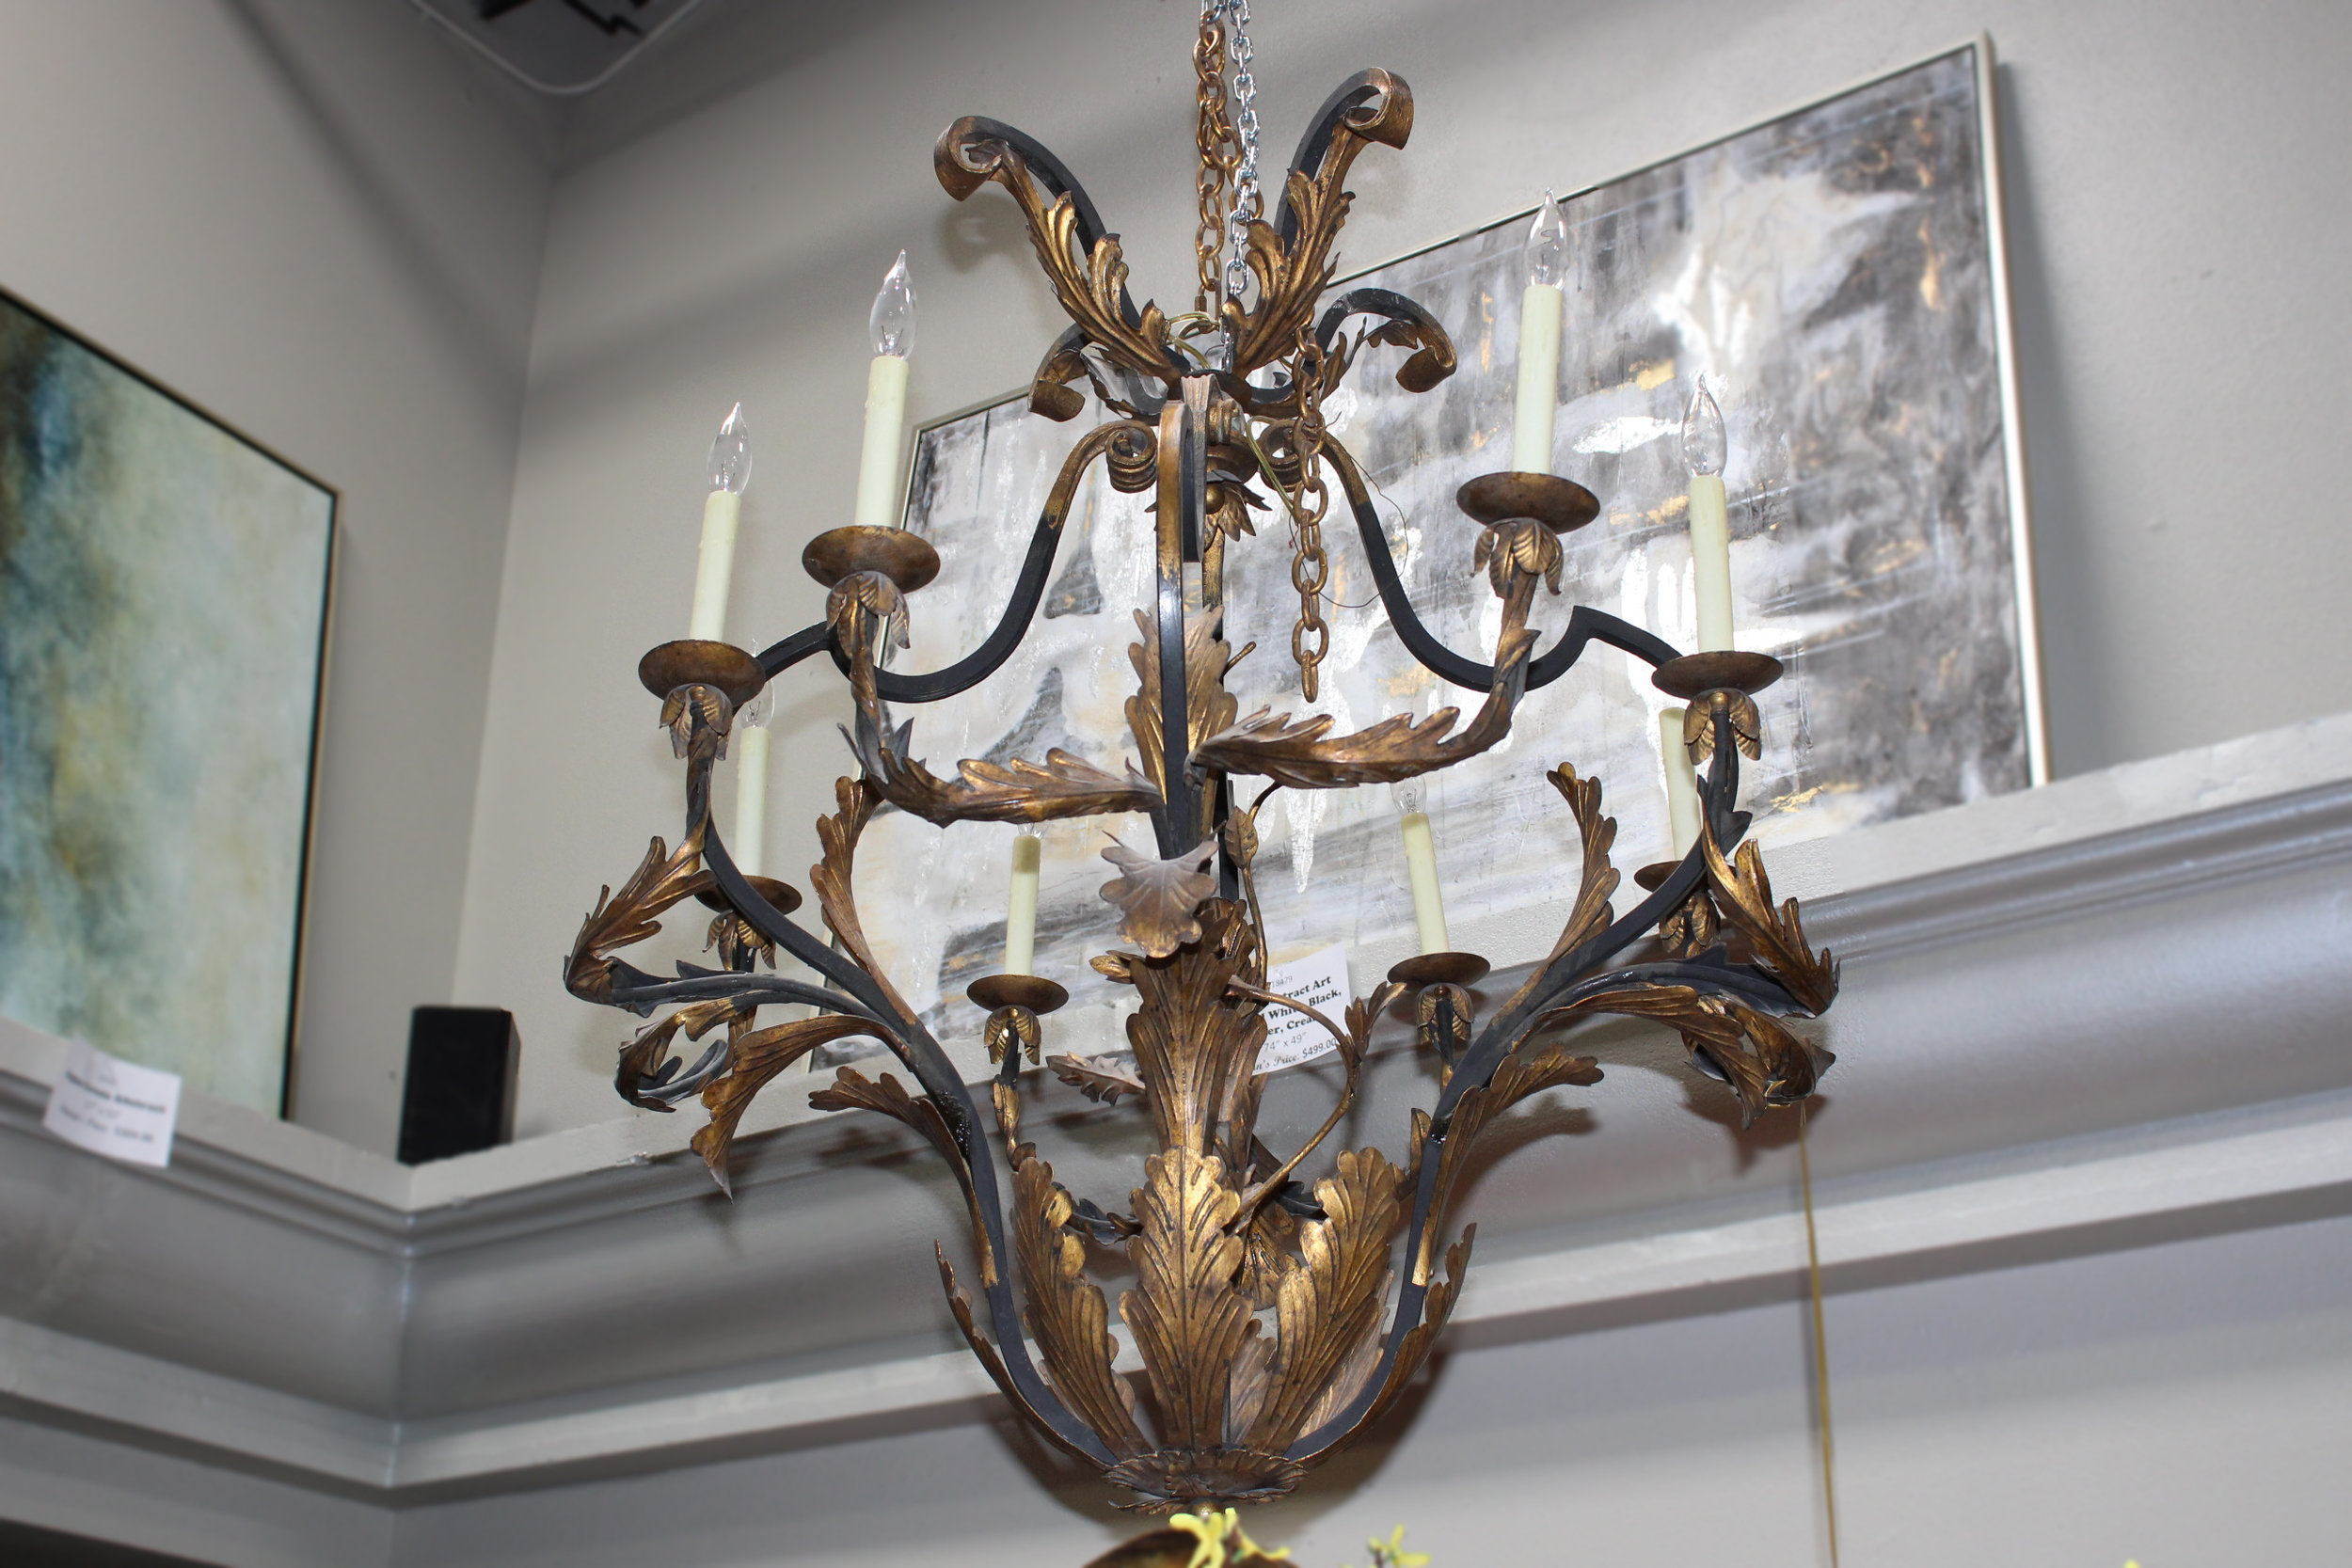 Pair of 8 Light Iron Chandeliers with Gold Accents